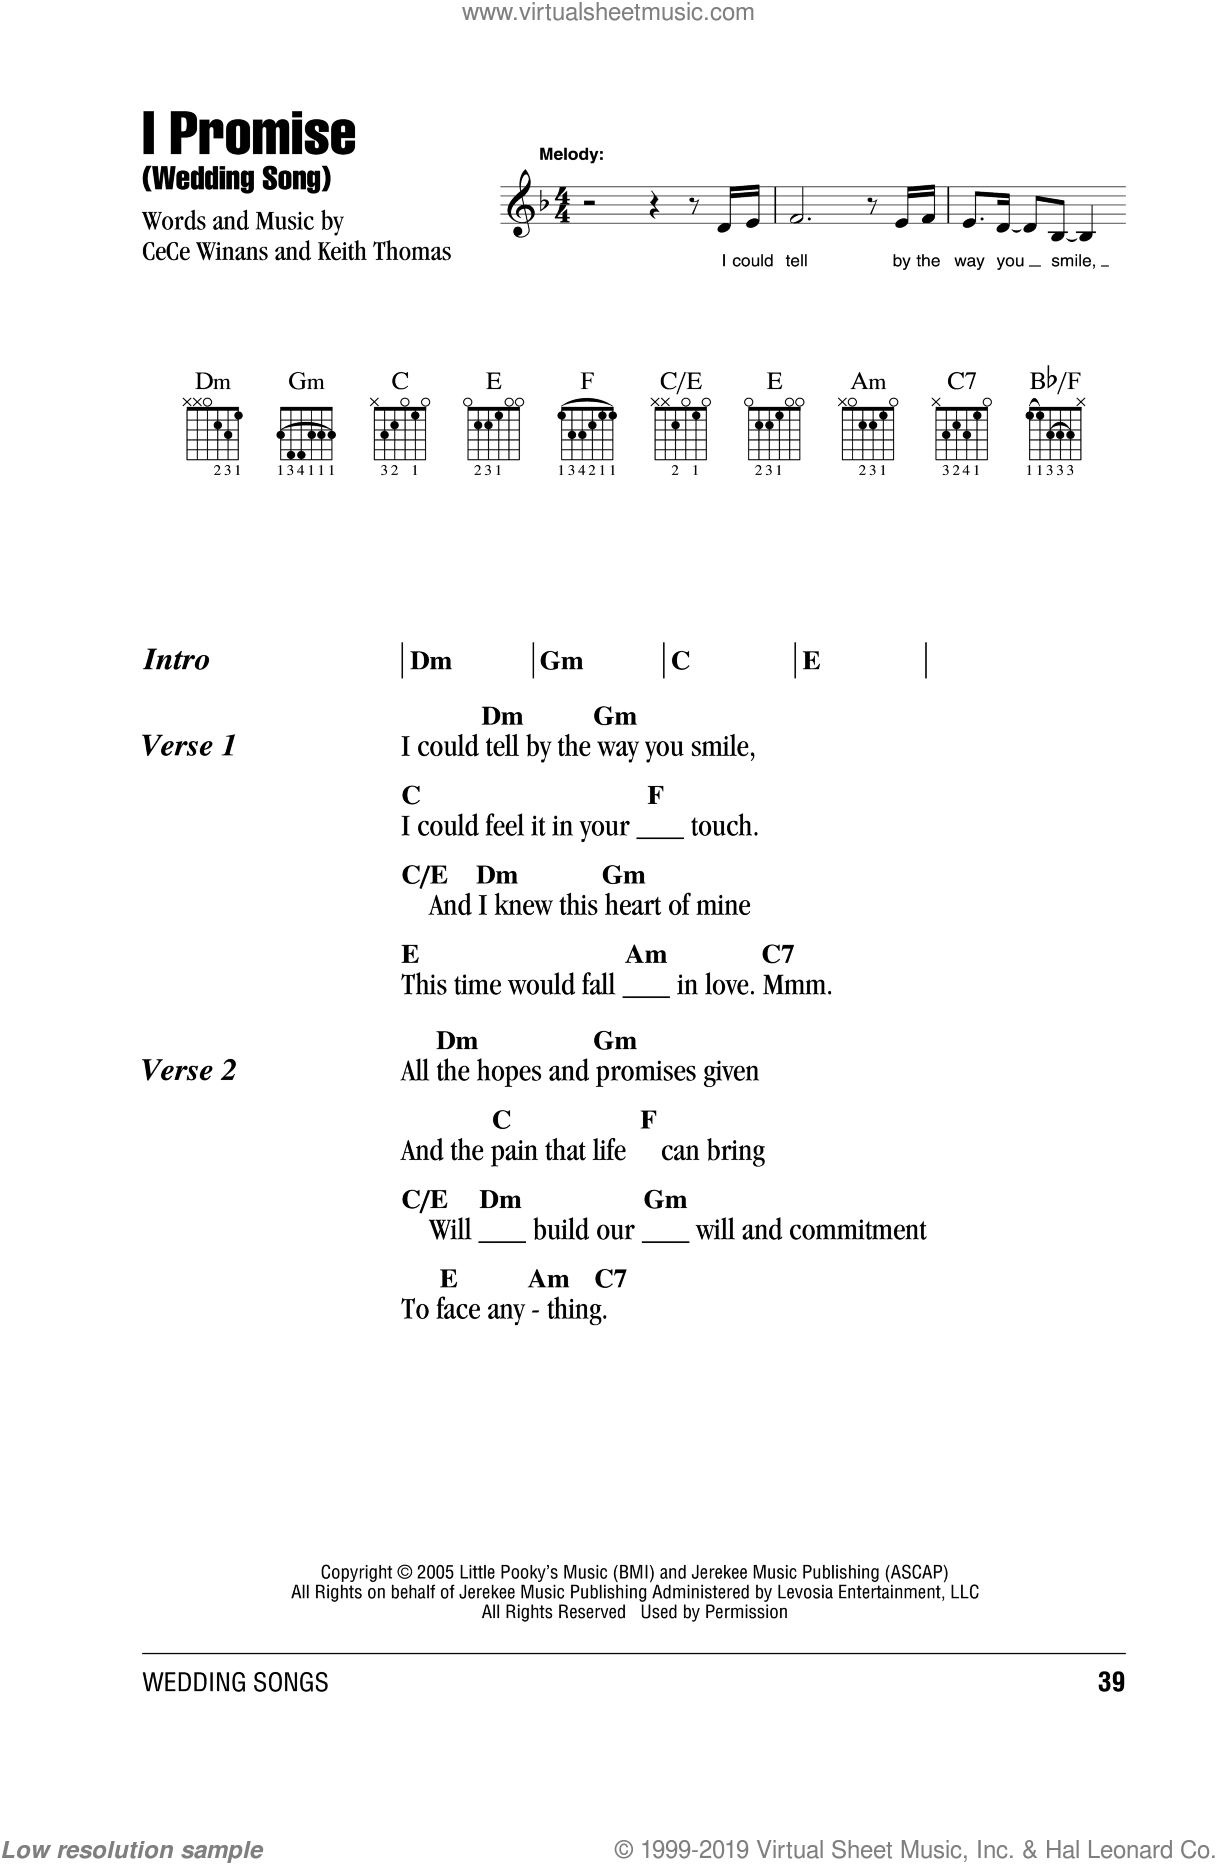 I Promise (Wedding Song) sheet music for guitar (chords) by CeCe Winans and Keith Thomas, wedding score, intermediate